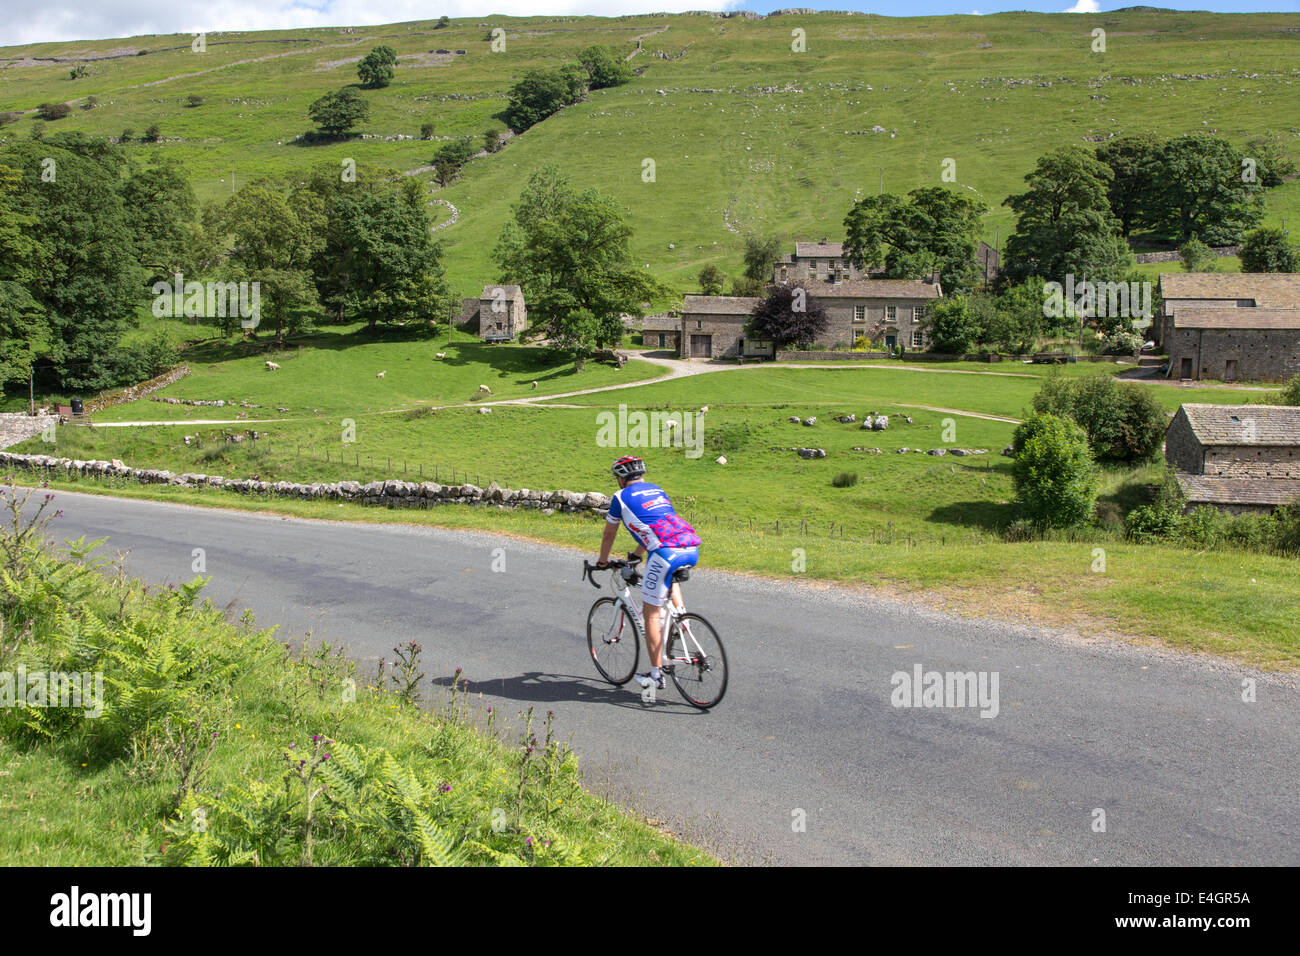 Cyclist passing Yockenthwaite, Wharfdale in the Yorkshire Dales National Park, North Yorkshire, England, UK - Stock Image